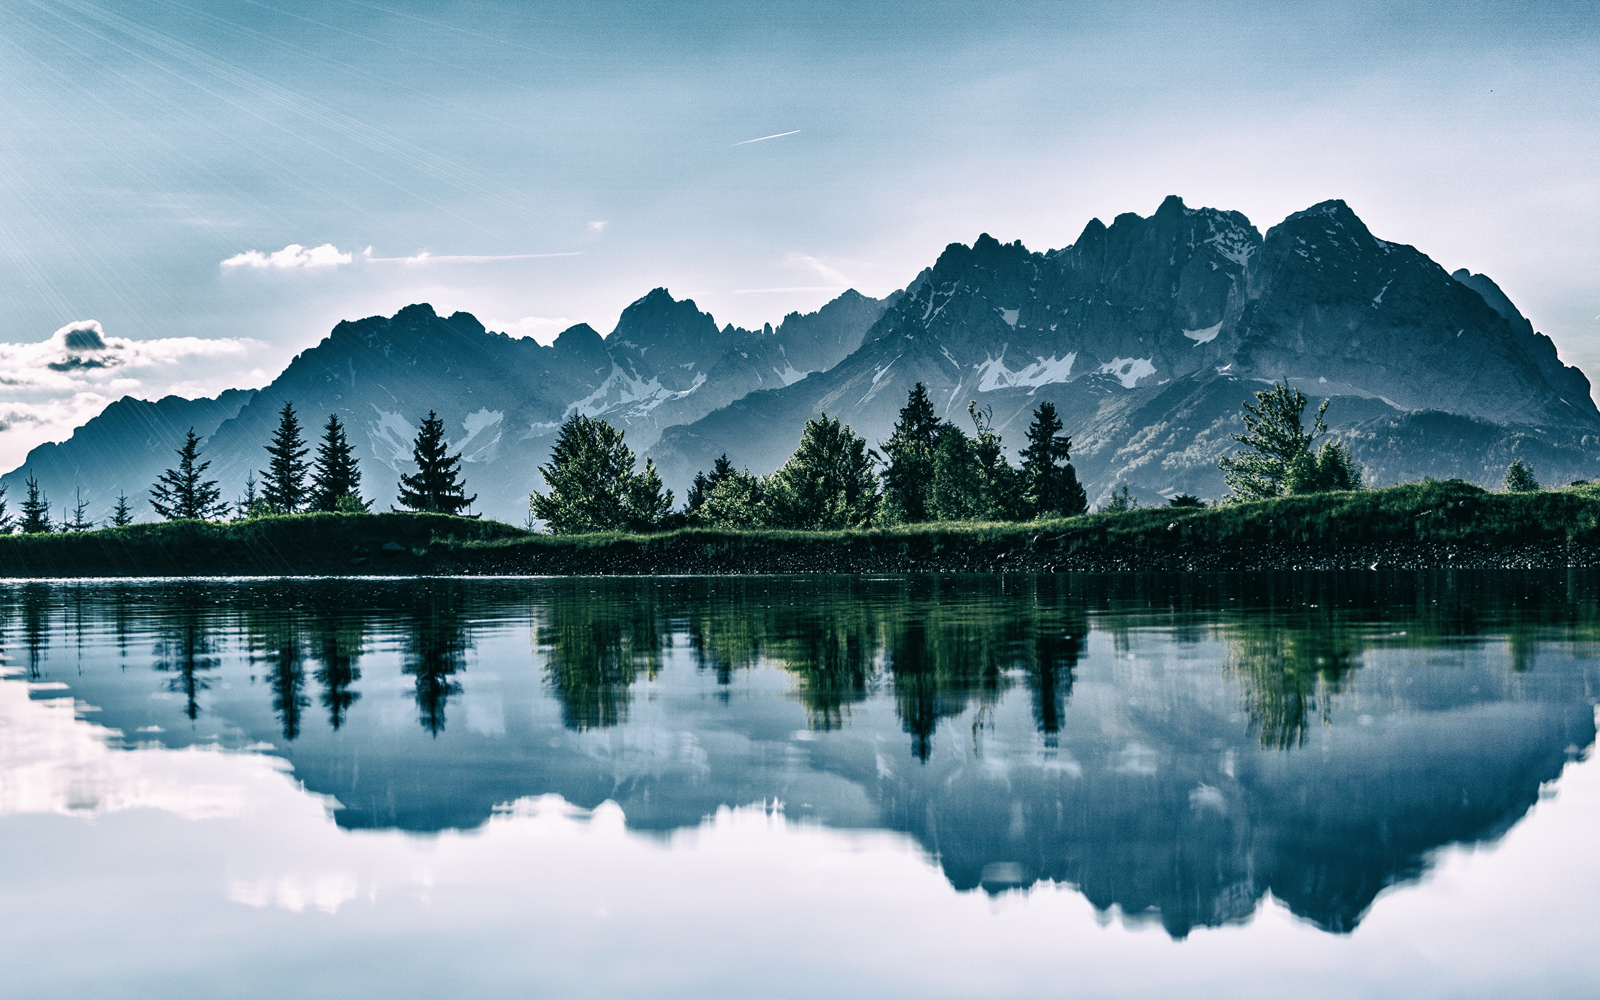 light shines over the mountains reflected in the calm waters of the lake.